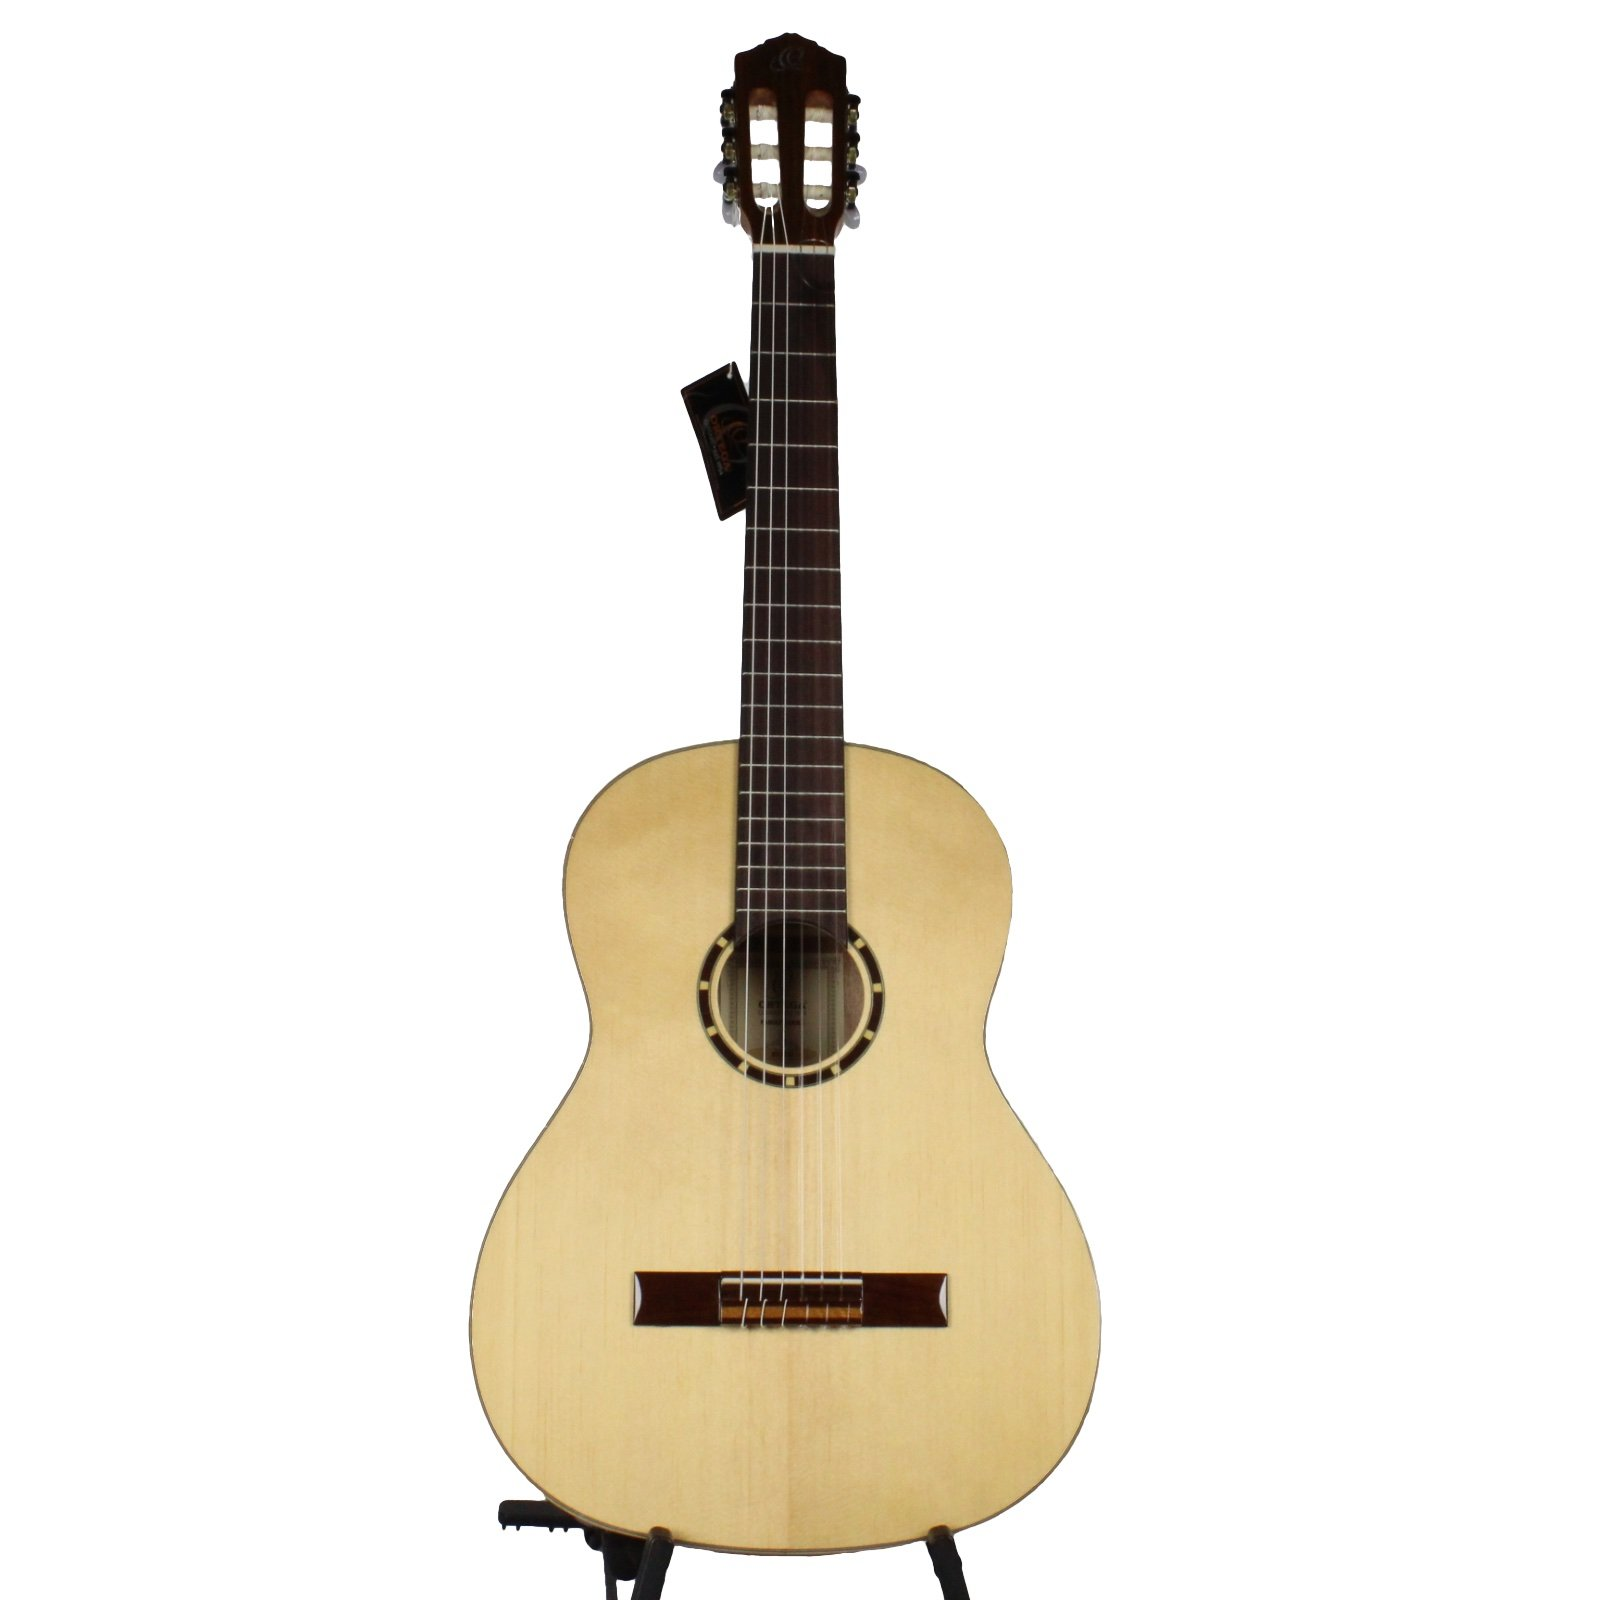 Ortega Family Series R121G Classical Guitar, 4/4 Size, Glossy